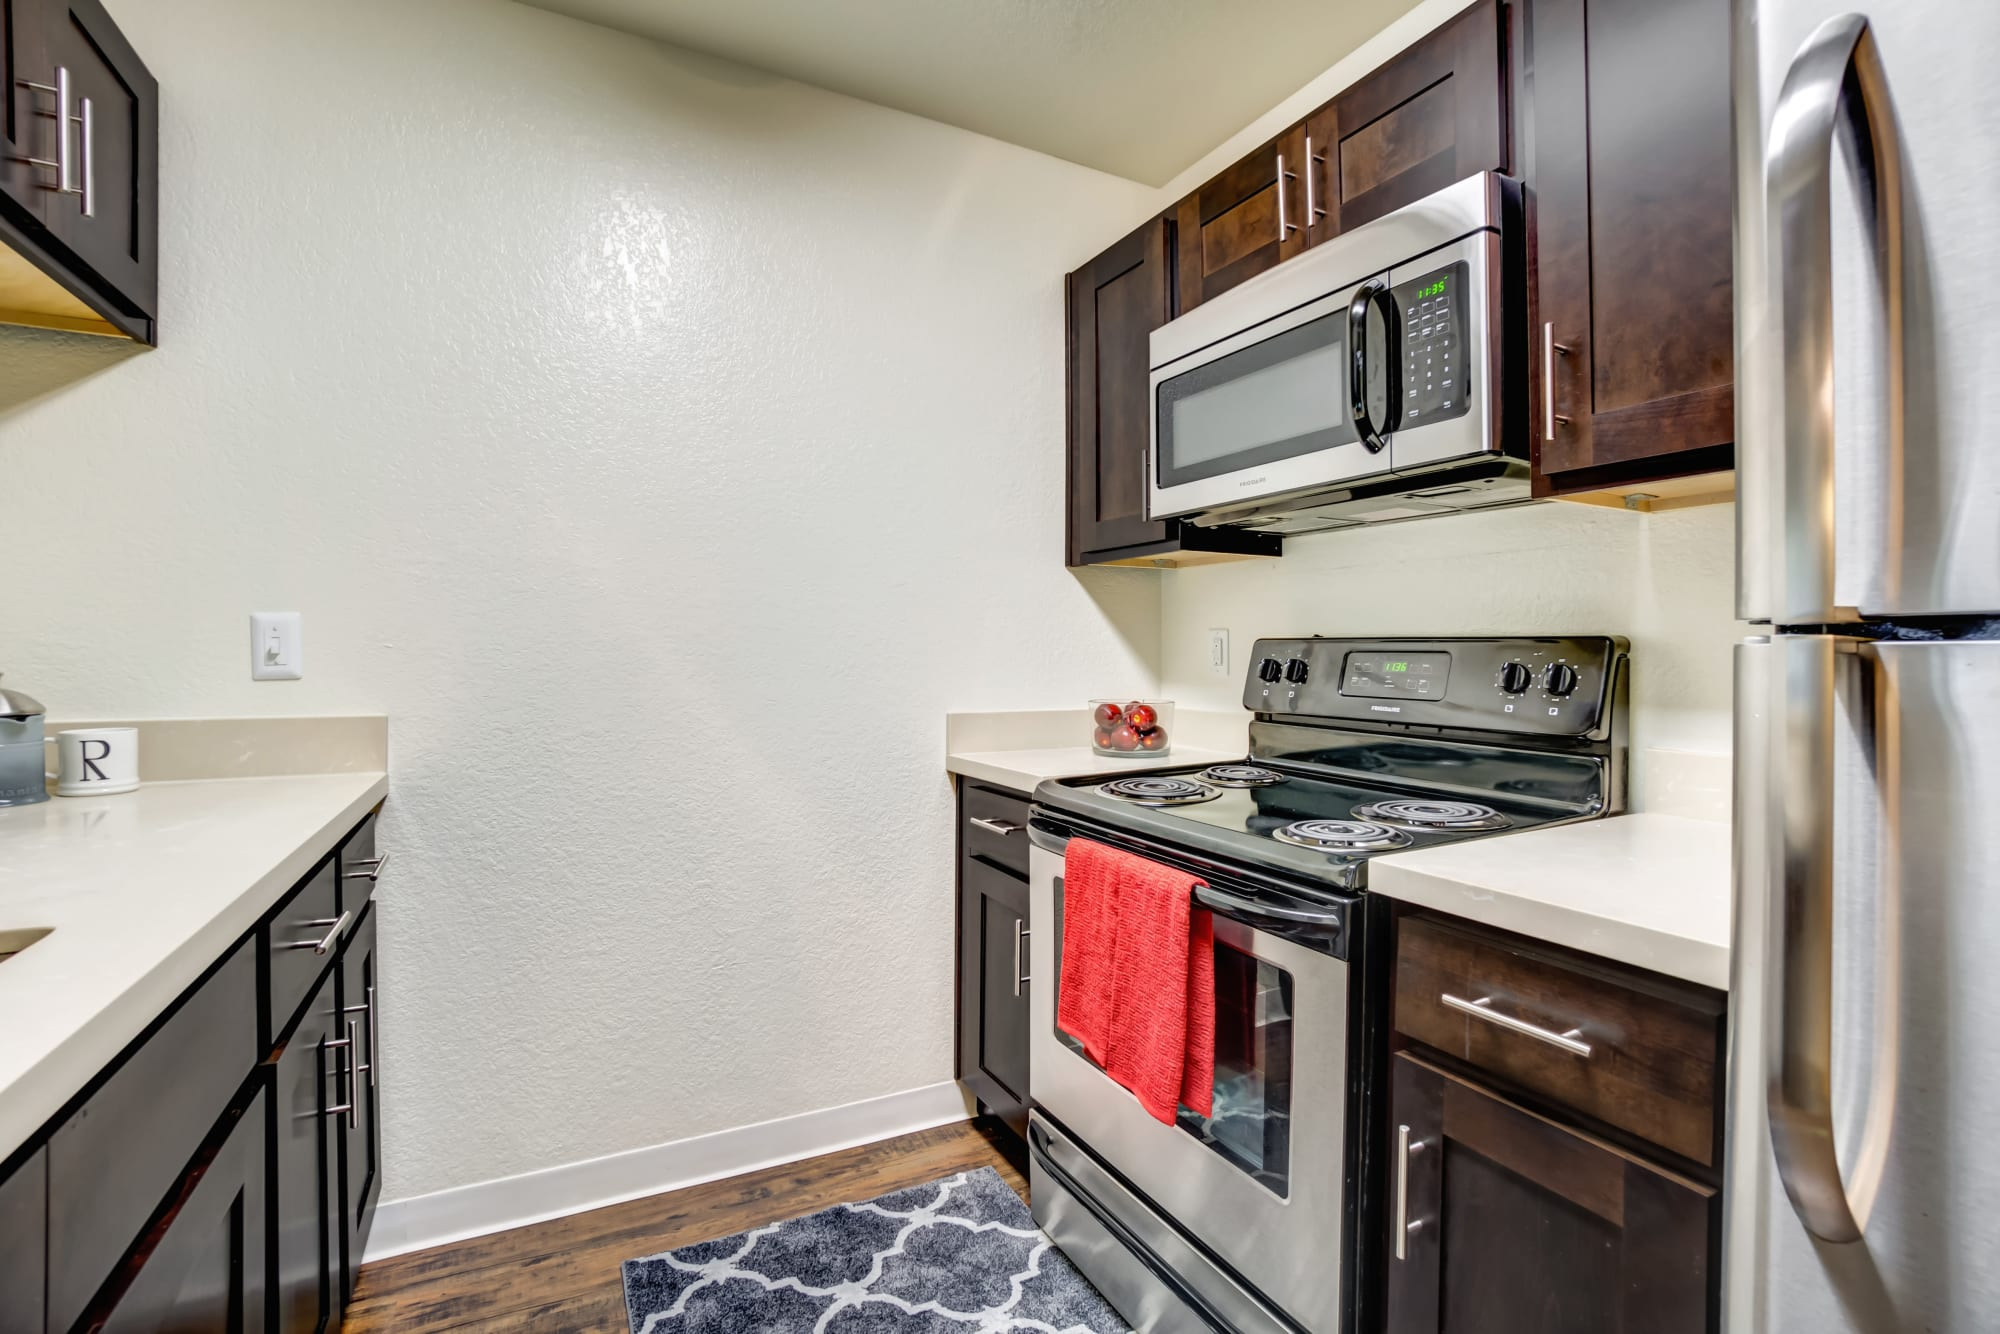 Beautiful kitchen cabinetry at Serramonte Ridge Apartment Homes in Daly City, California